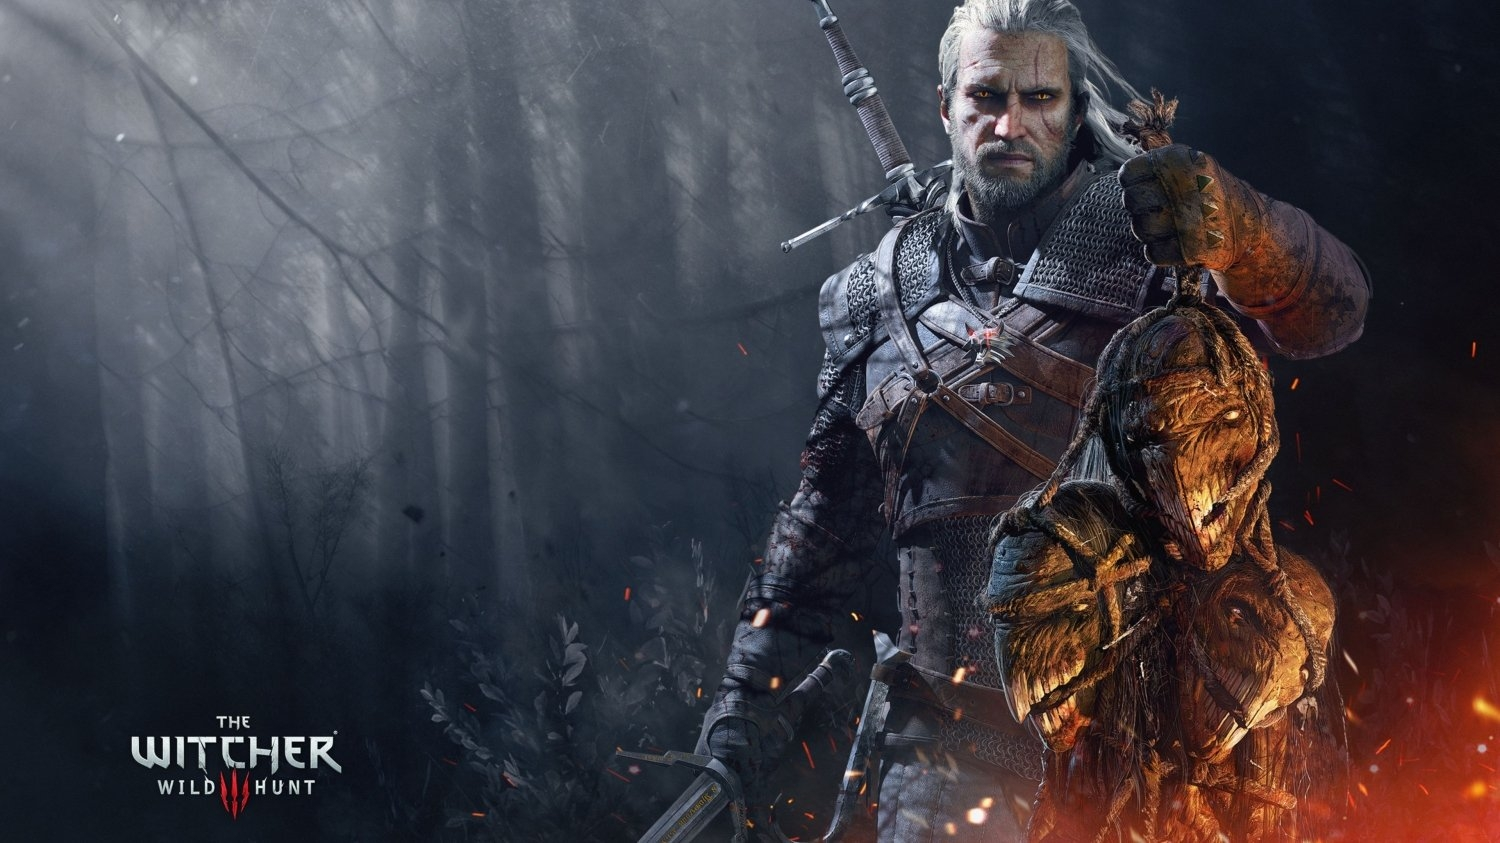 Witcher 4 could be exclusive to next-gen PS5, Xbox Series X consoles